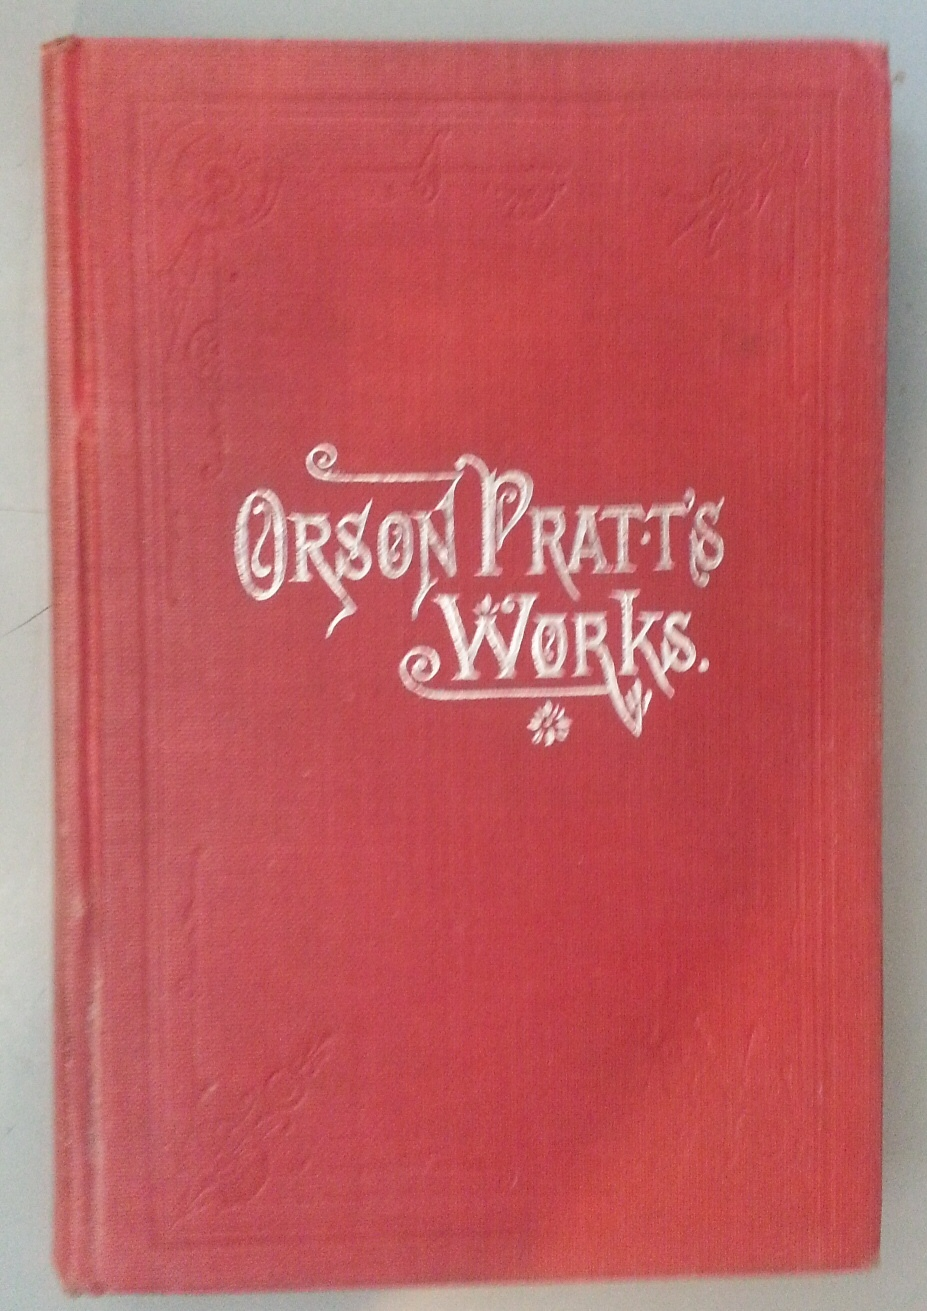 Image for ORSON PRATT'S WORKS: ON THE DOCTRINES OF THE GOSPEL A Series of Pamphlets on the Doctrines of the Gospel